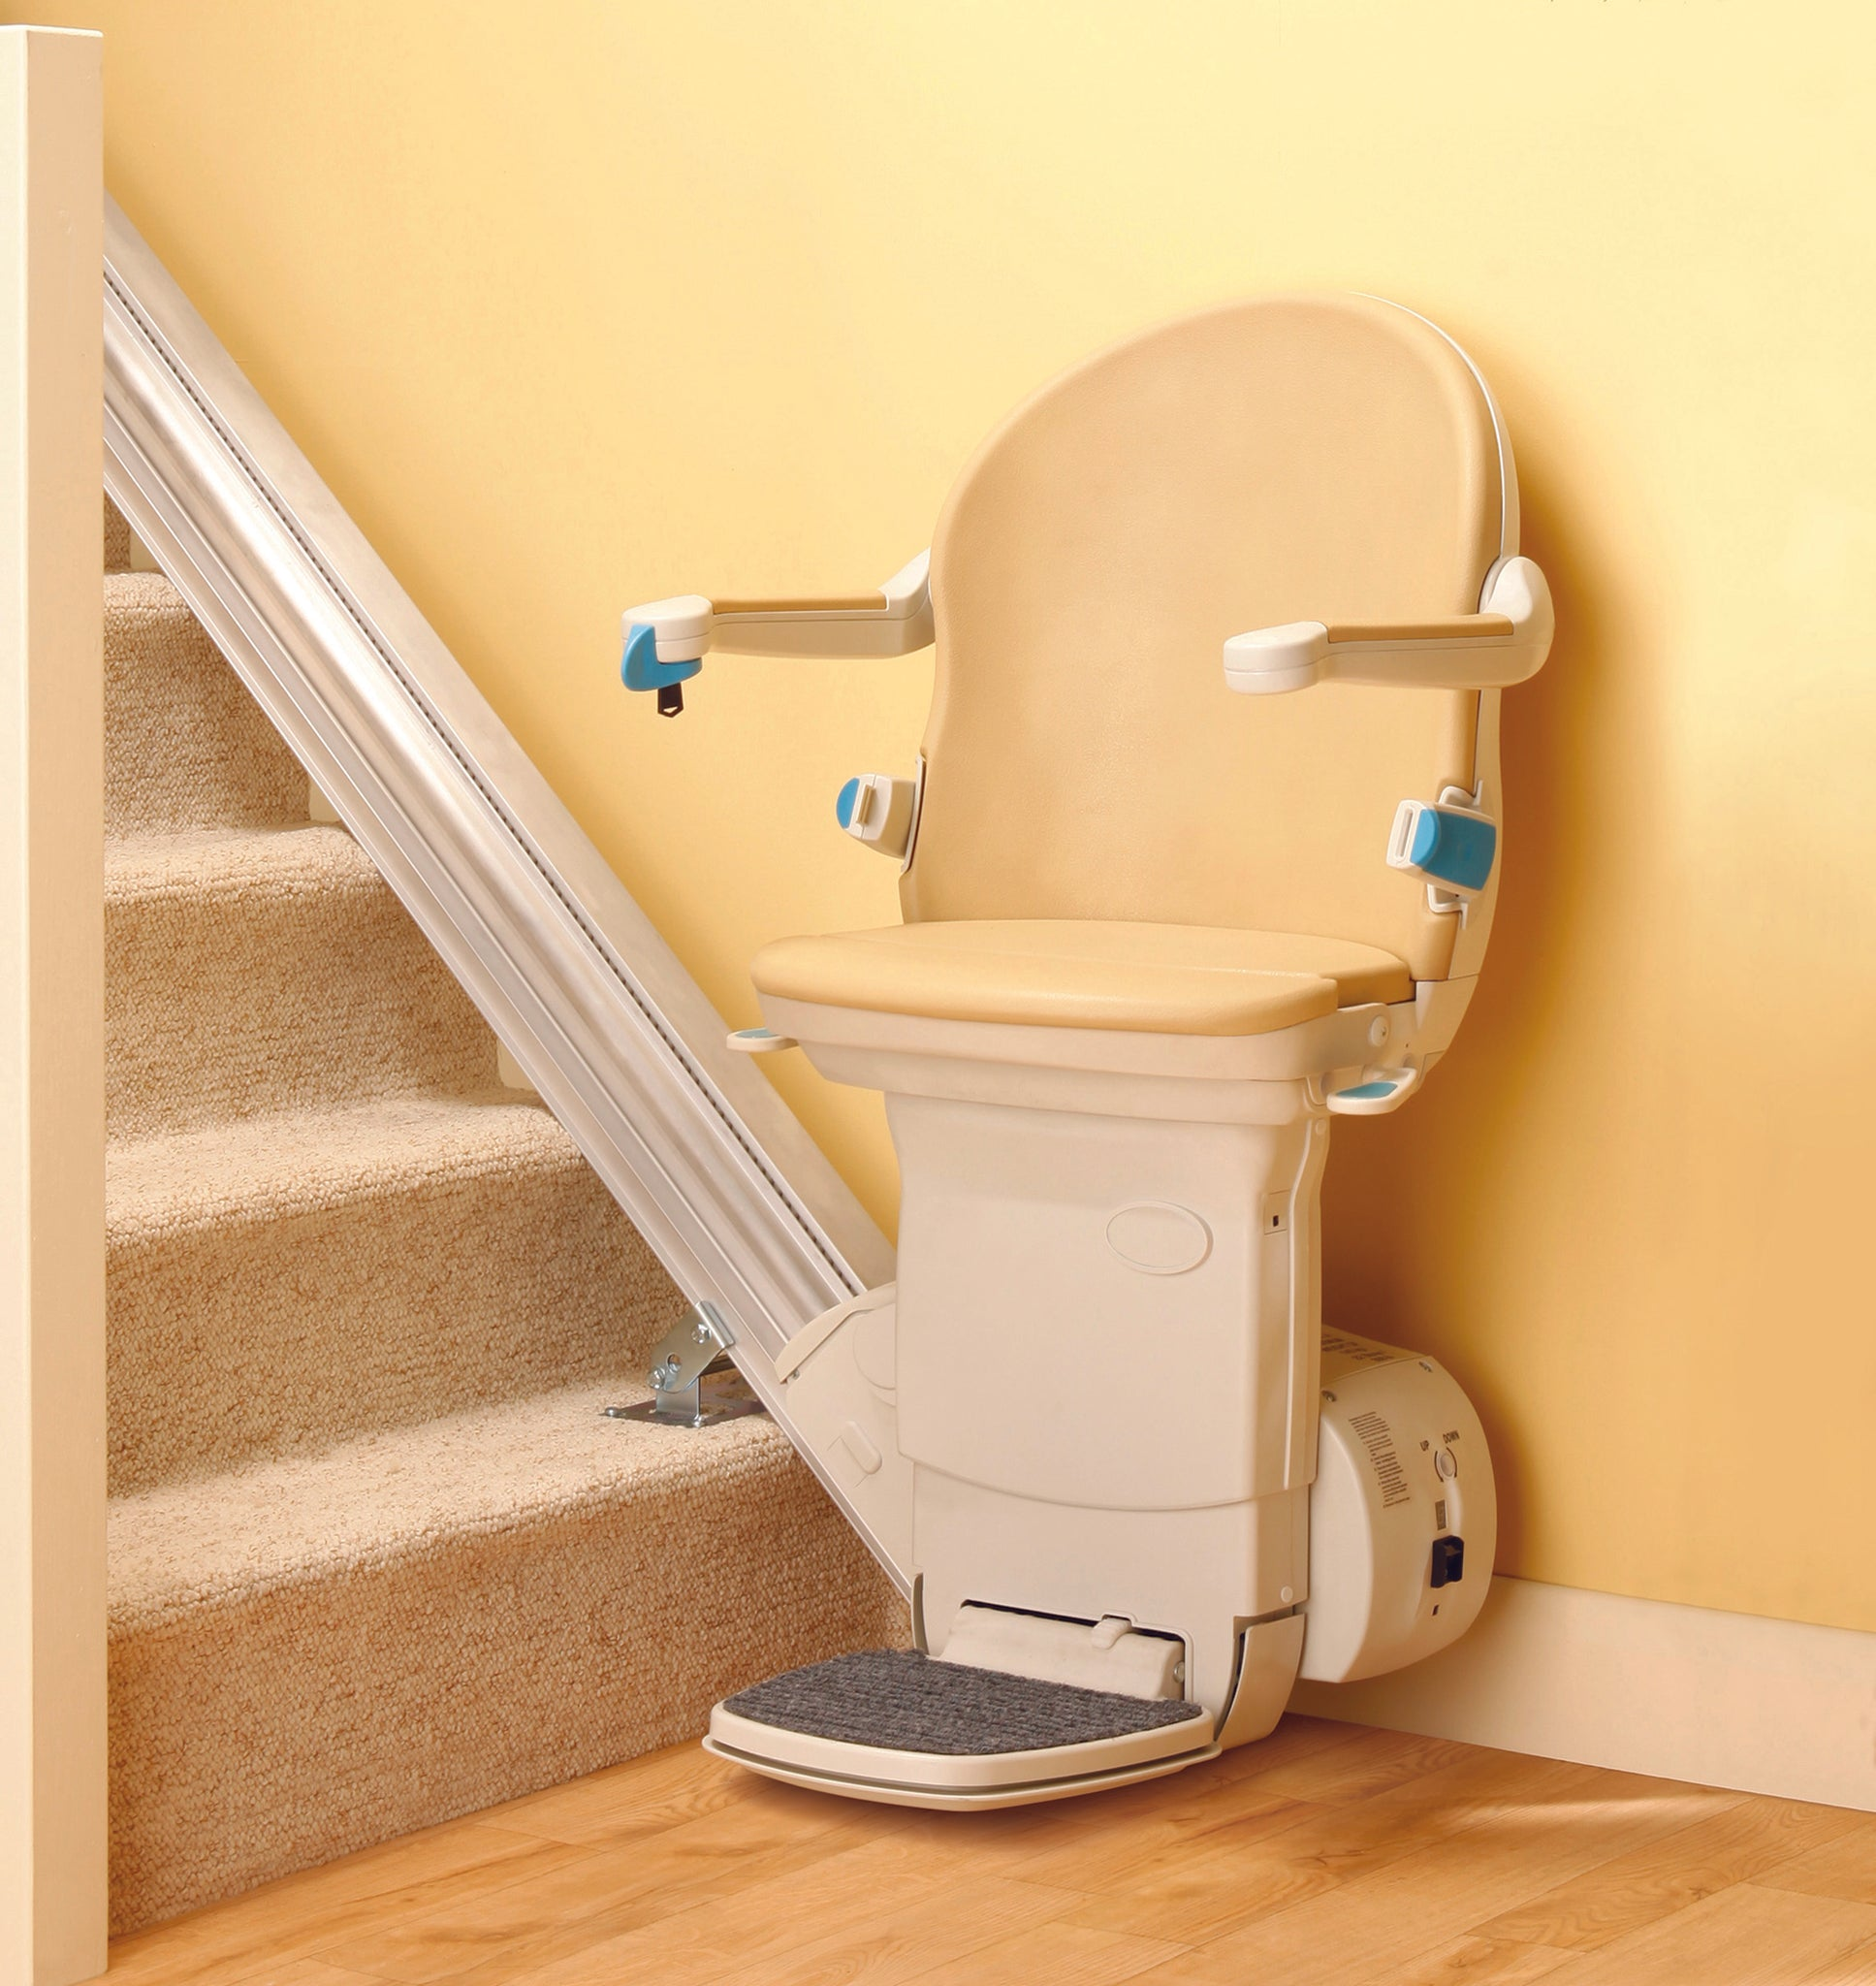 Handicare Simplicity 950 Straight Stairlift at City Stairlift on stair lift home, stair lift battery, wheelchair ramp diagrams, rigging crane lift plan diagrams, hydraulic scissor lift diagrams, power wheelchairs diagrams, stair lift repair, stair lift parts, stair lift accessories,